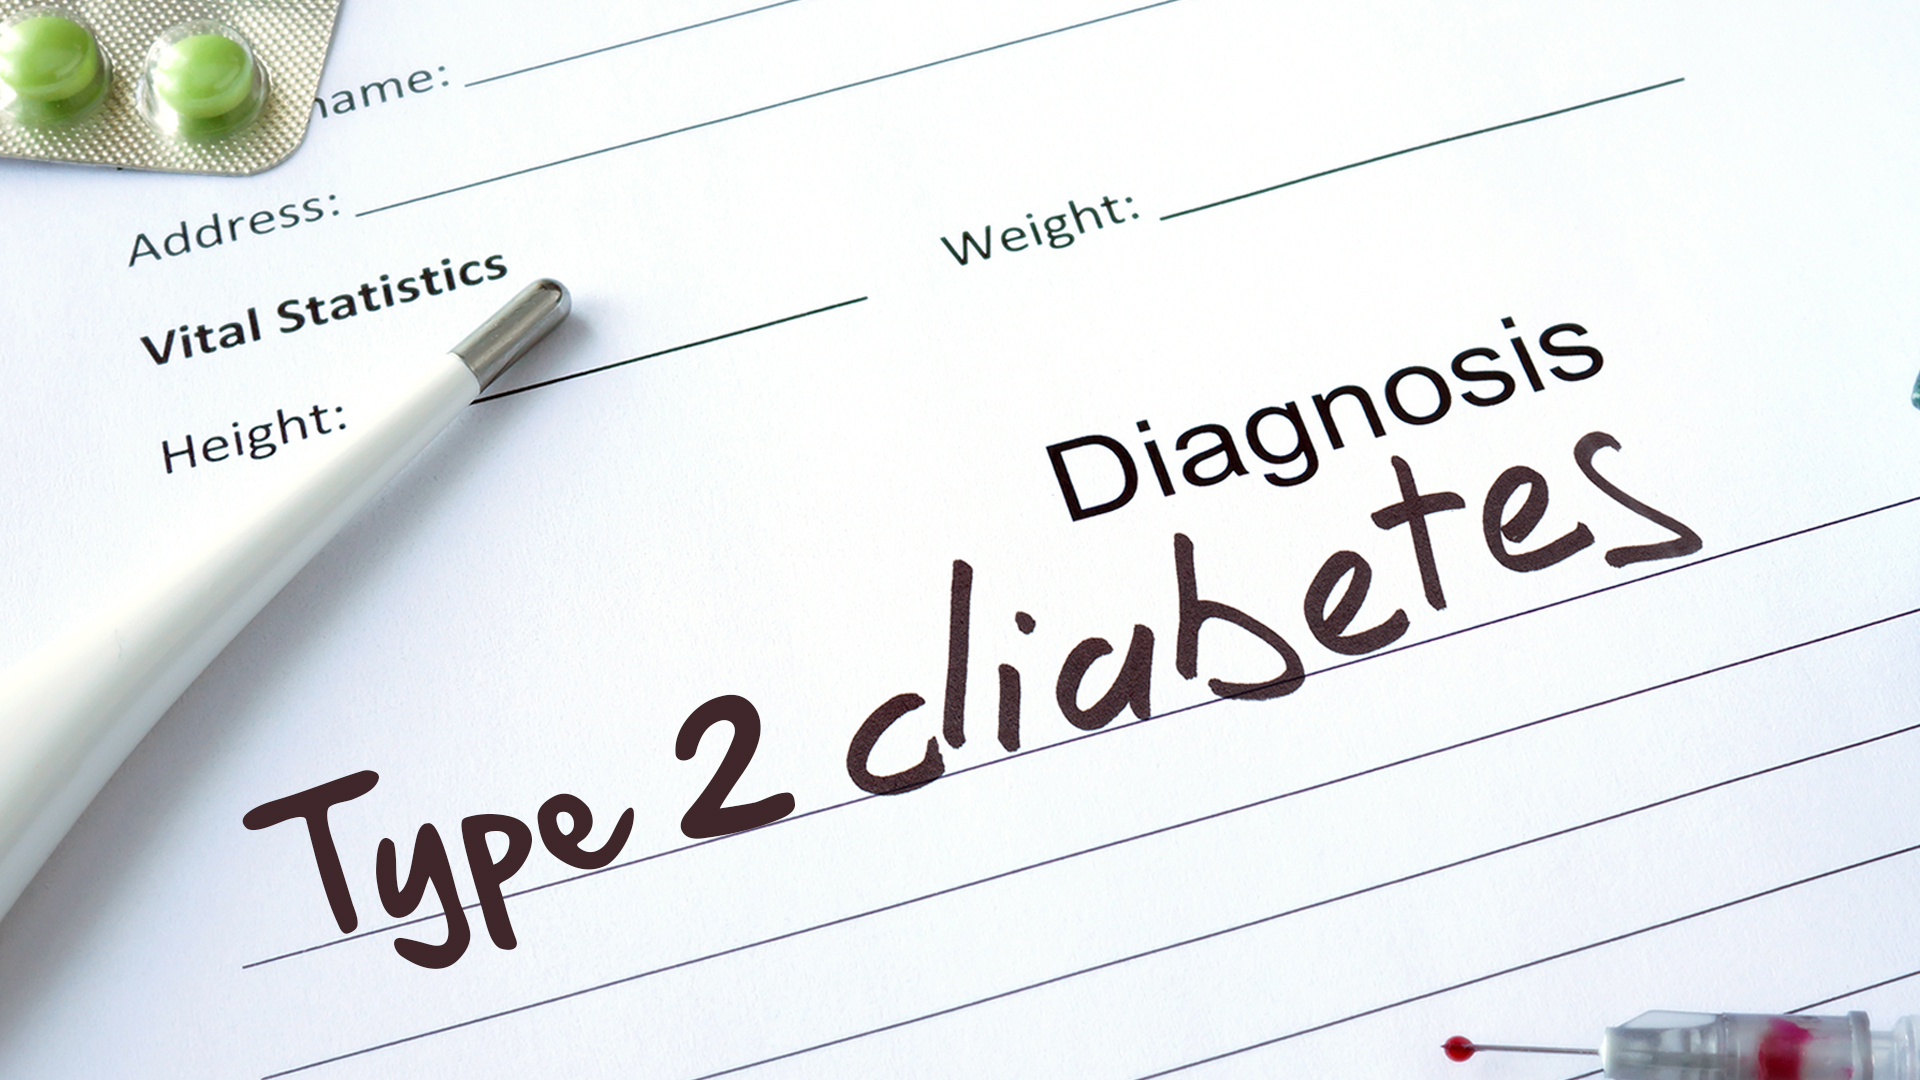 02.Diagnosing-Type-2-Diabetes